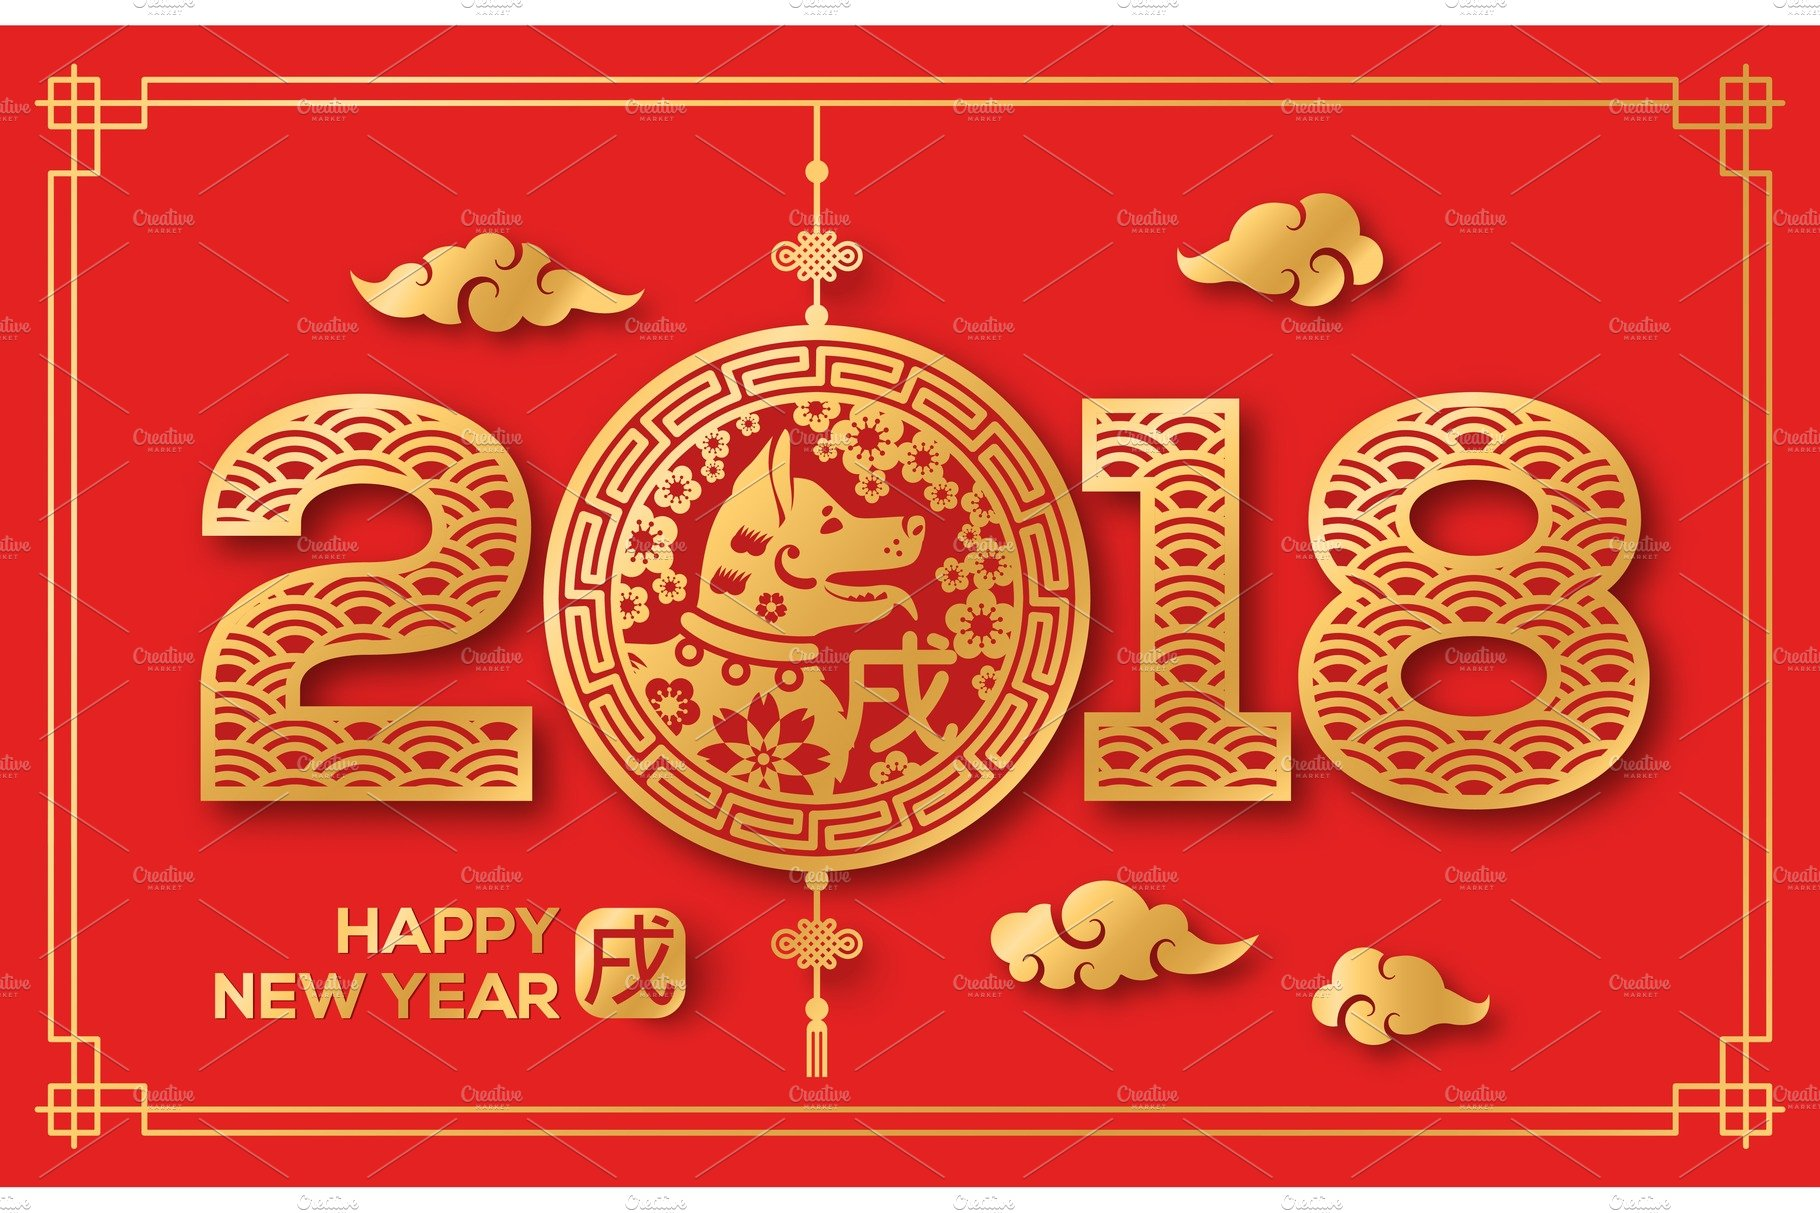 2018 Chinese New Year Two Sides Poster Illustrations Creative Market